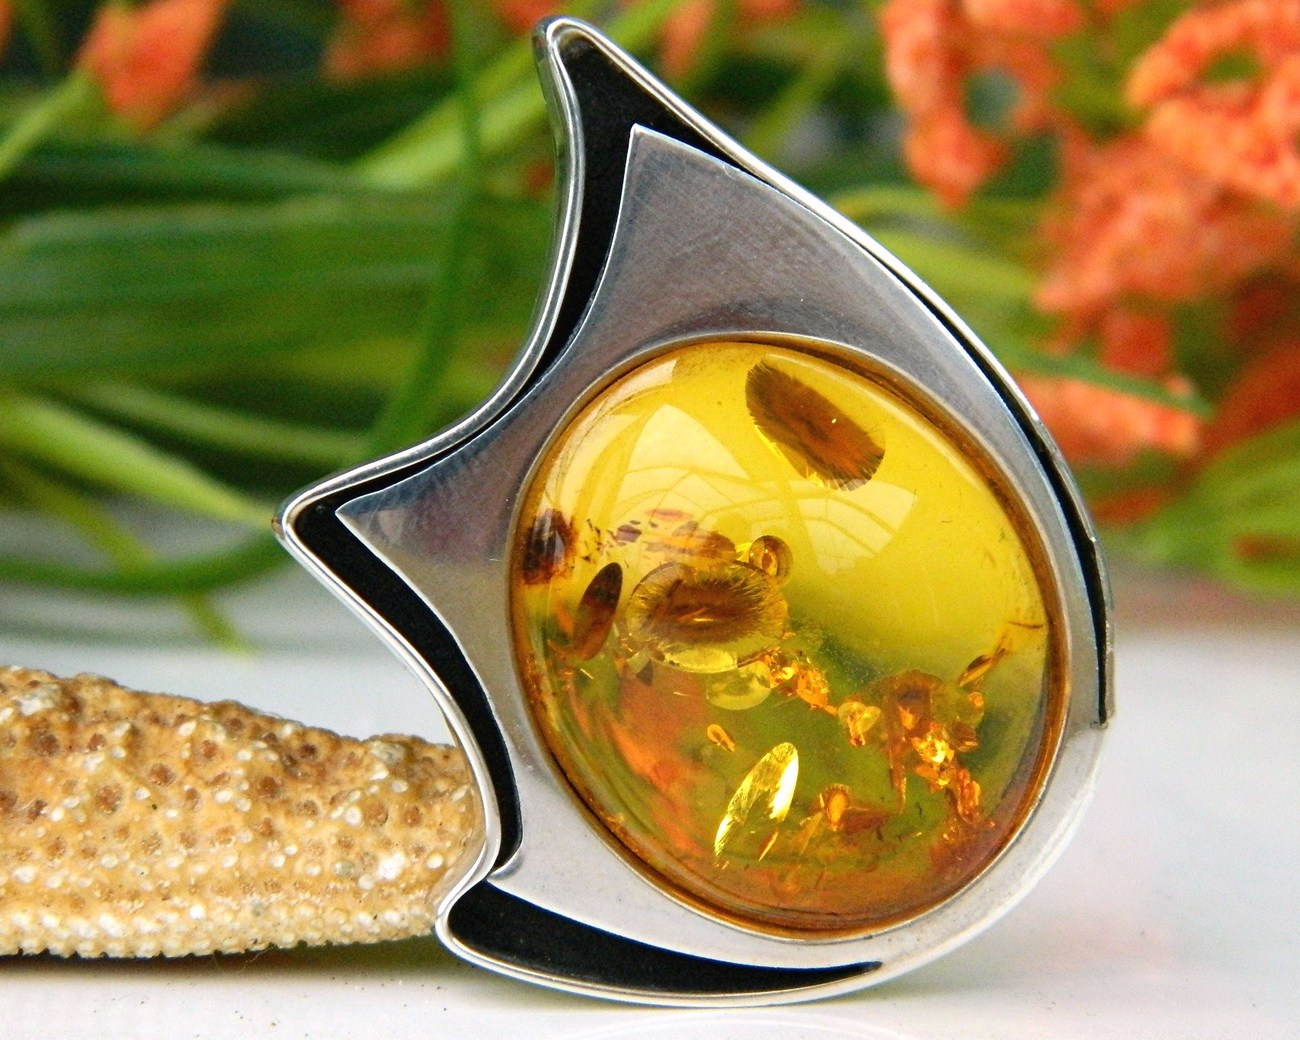 Amber_modernist_brooch_pin_sterling_silver_hallmarked_poland